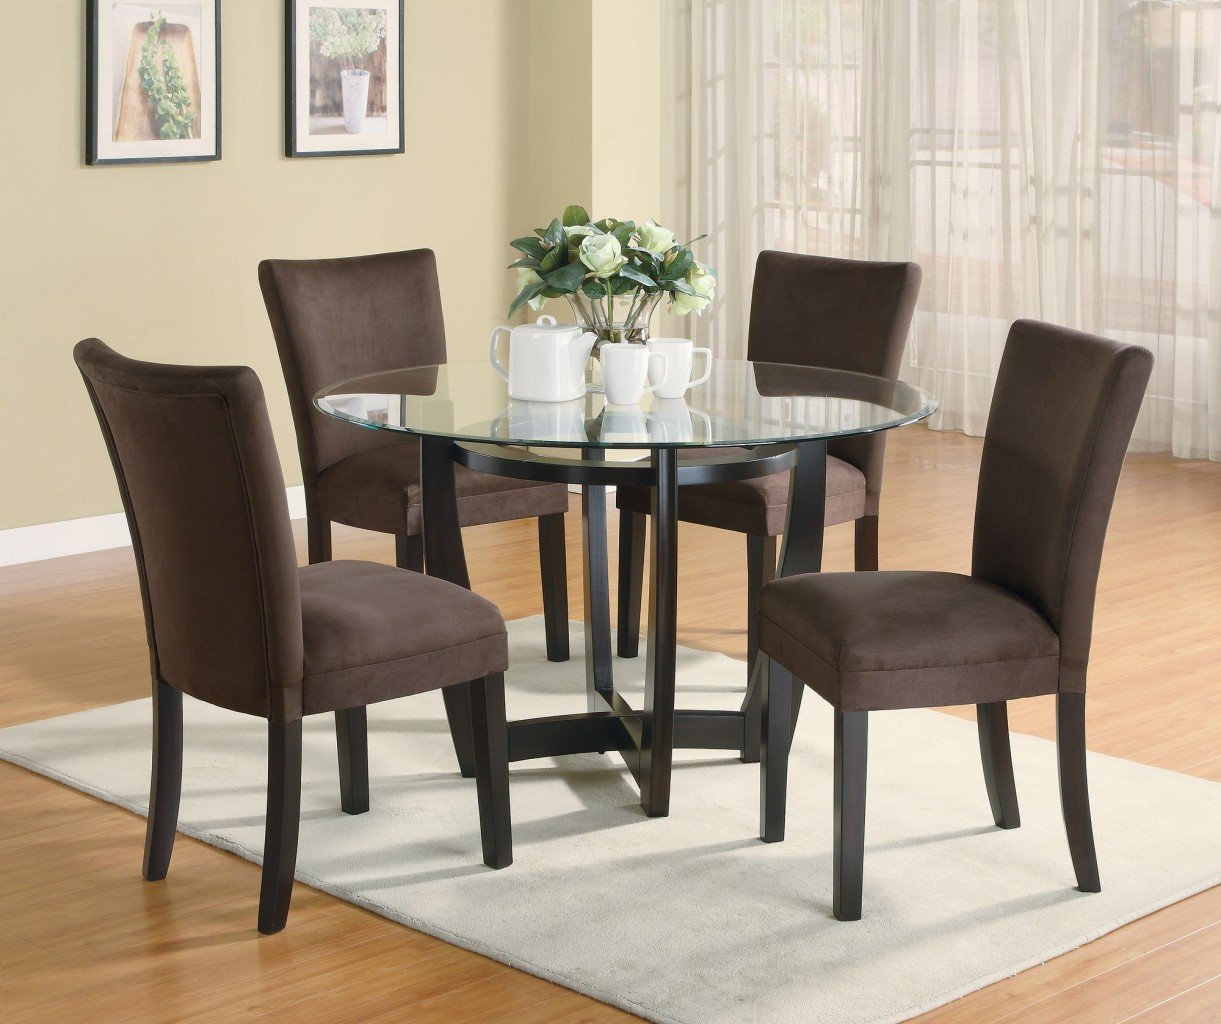 Cheap dining room table sets home furniture design for Dinette furniture